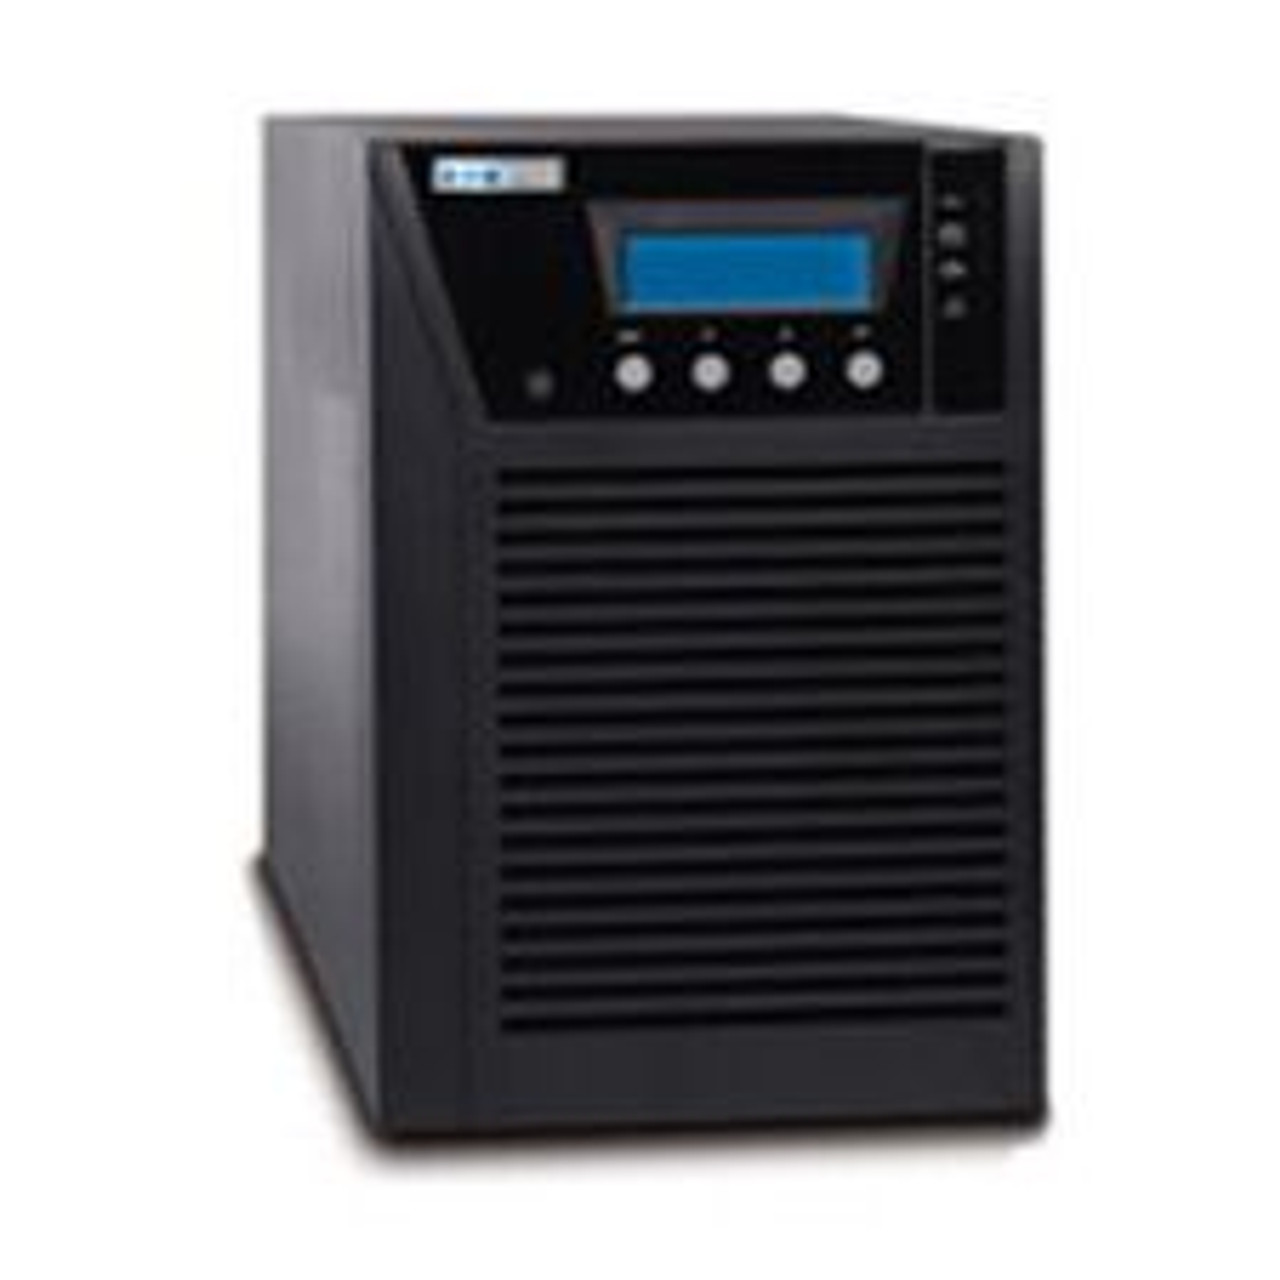 Image for Eaton 9130 1000VA/900W On Line Tower UPS CX Computer Superstore